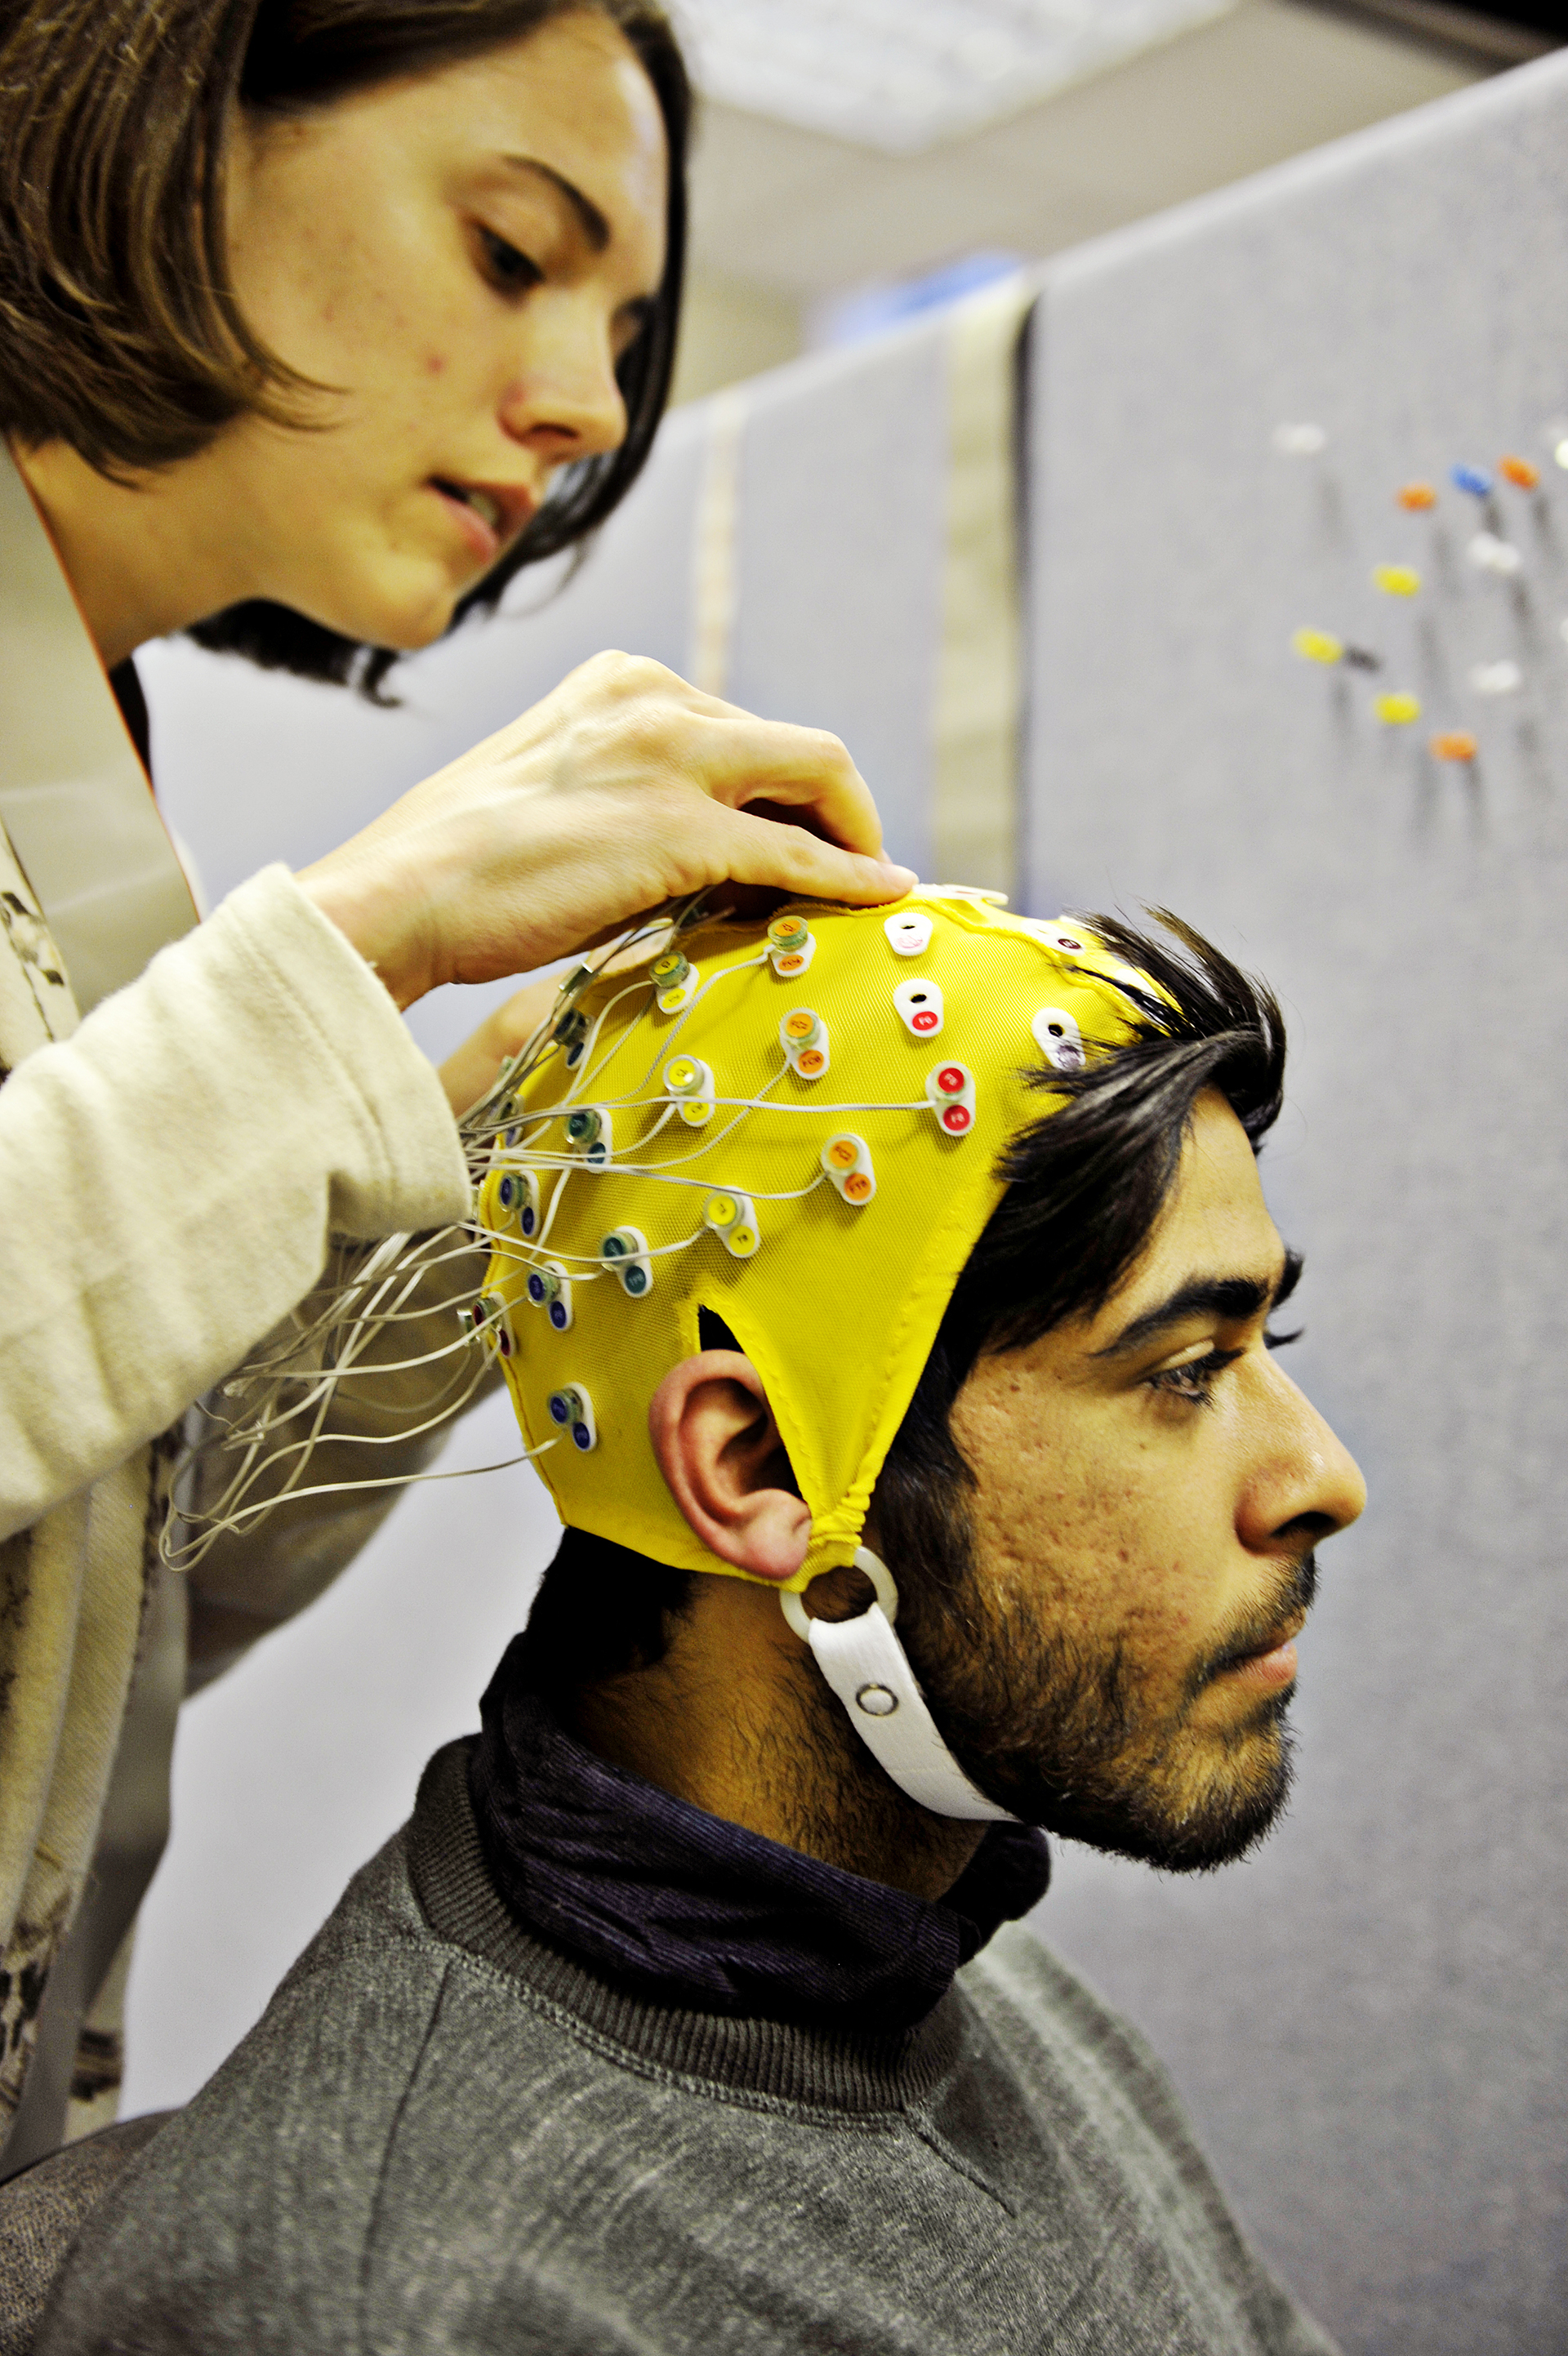 INTO students using brainwave-monitoring technology